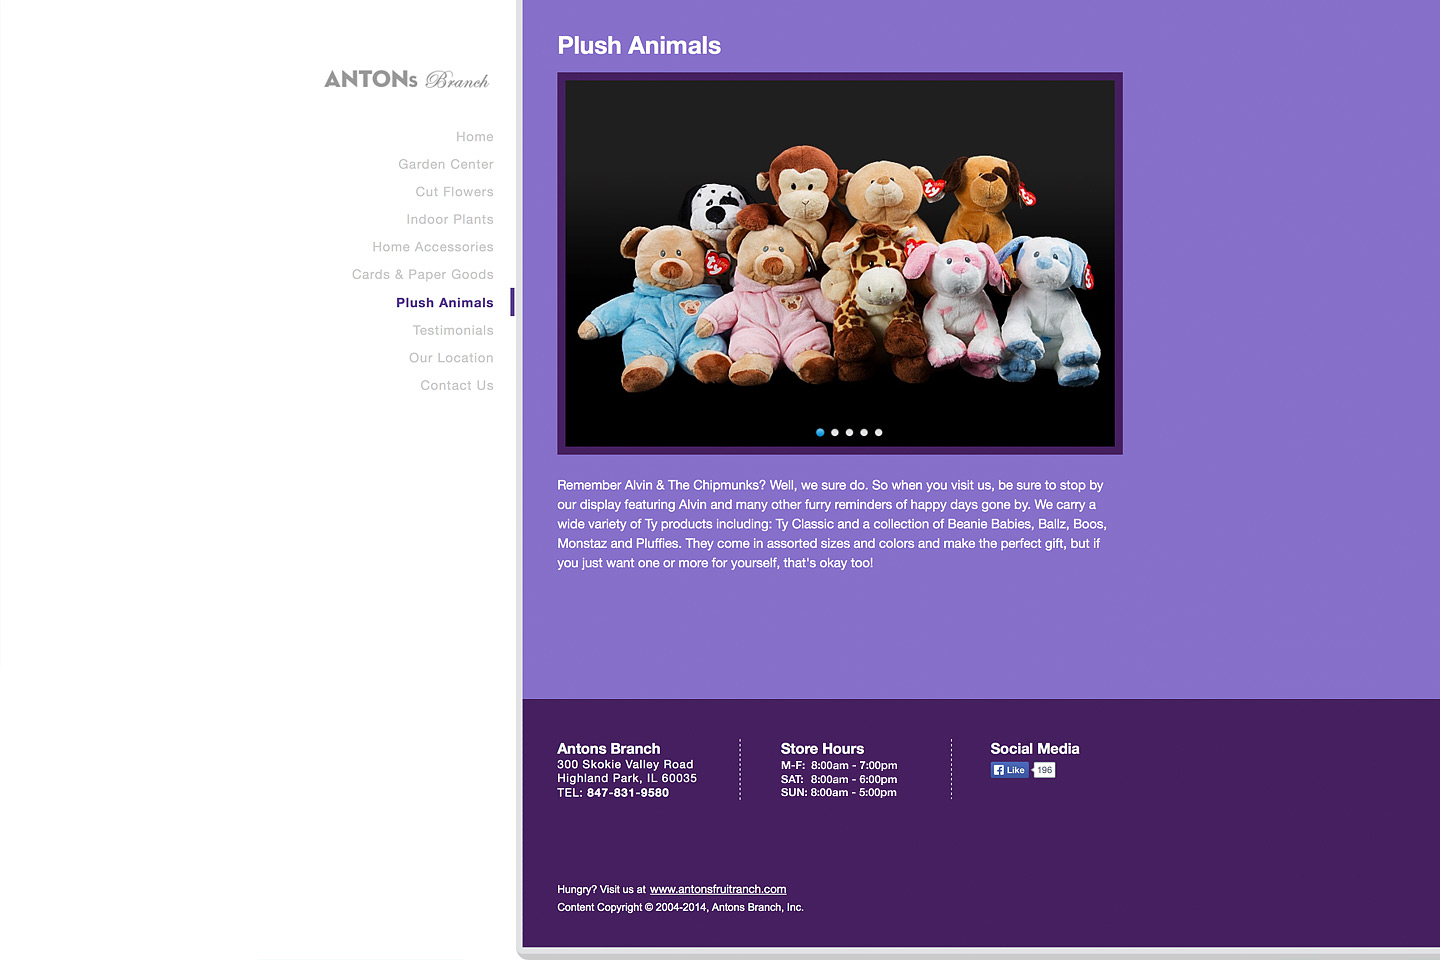 a screen capture of the plush animals page, featuring an arrangement of ty beanie babies for sale at the antons branch